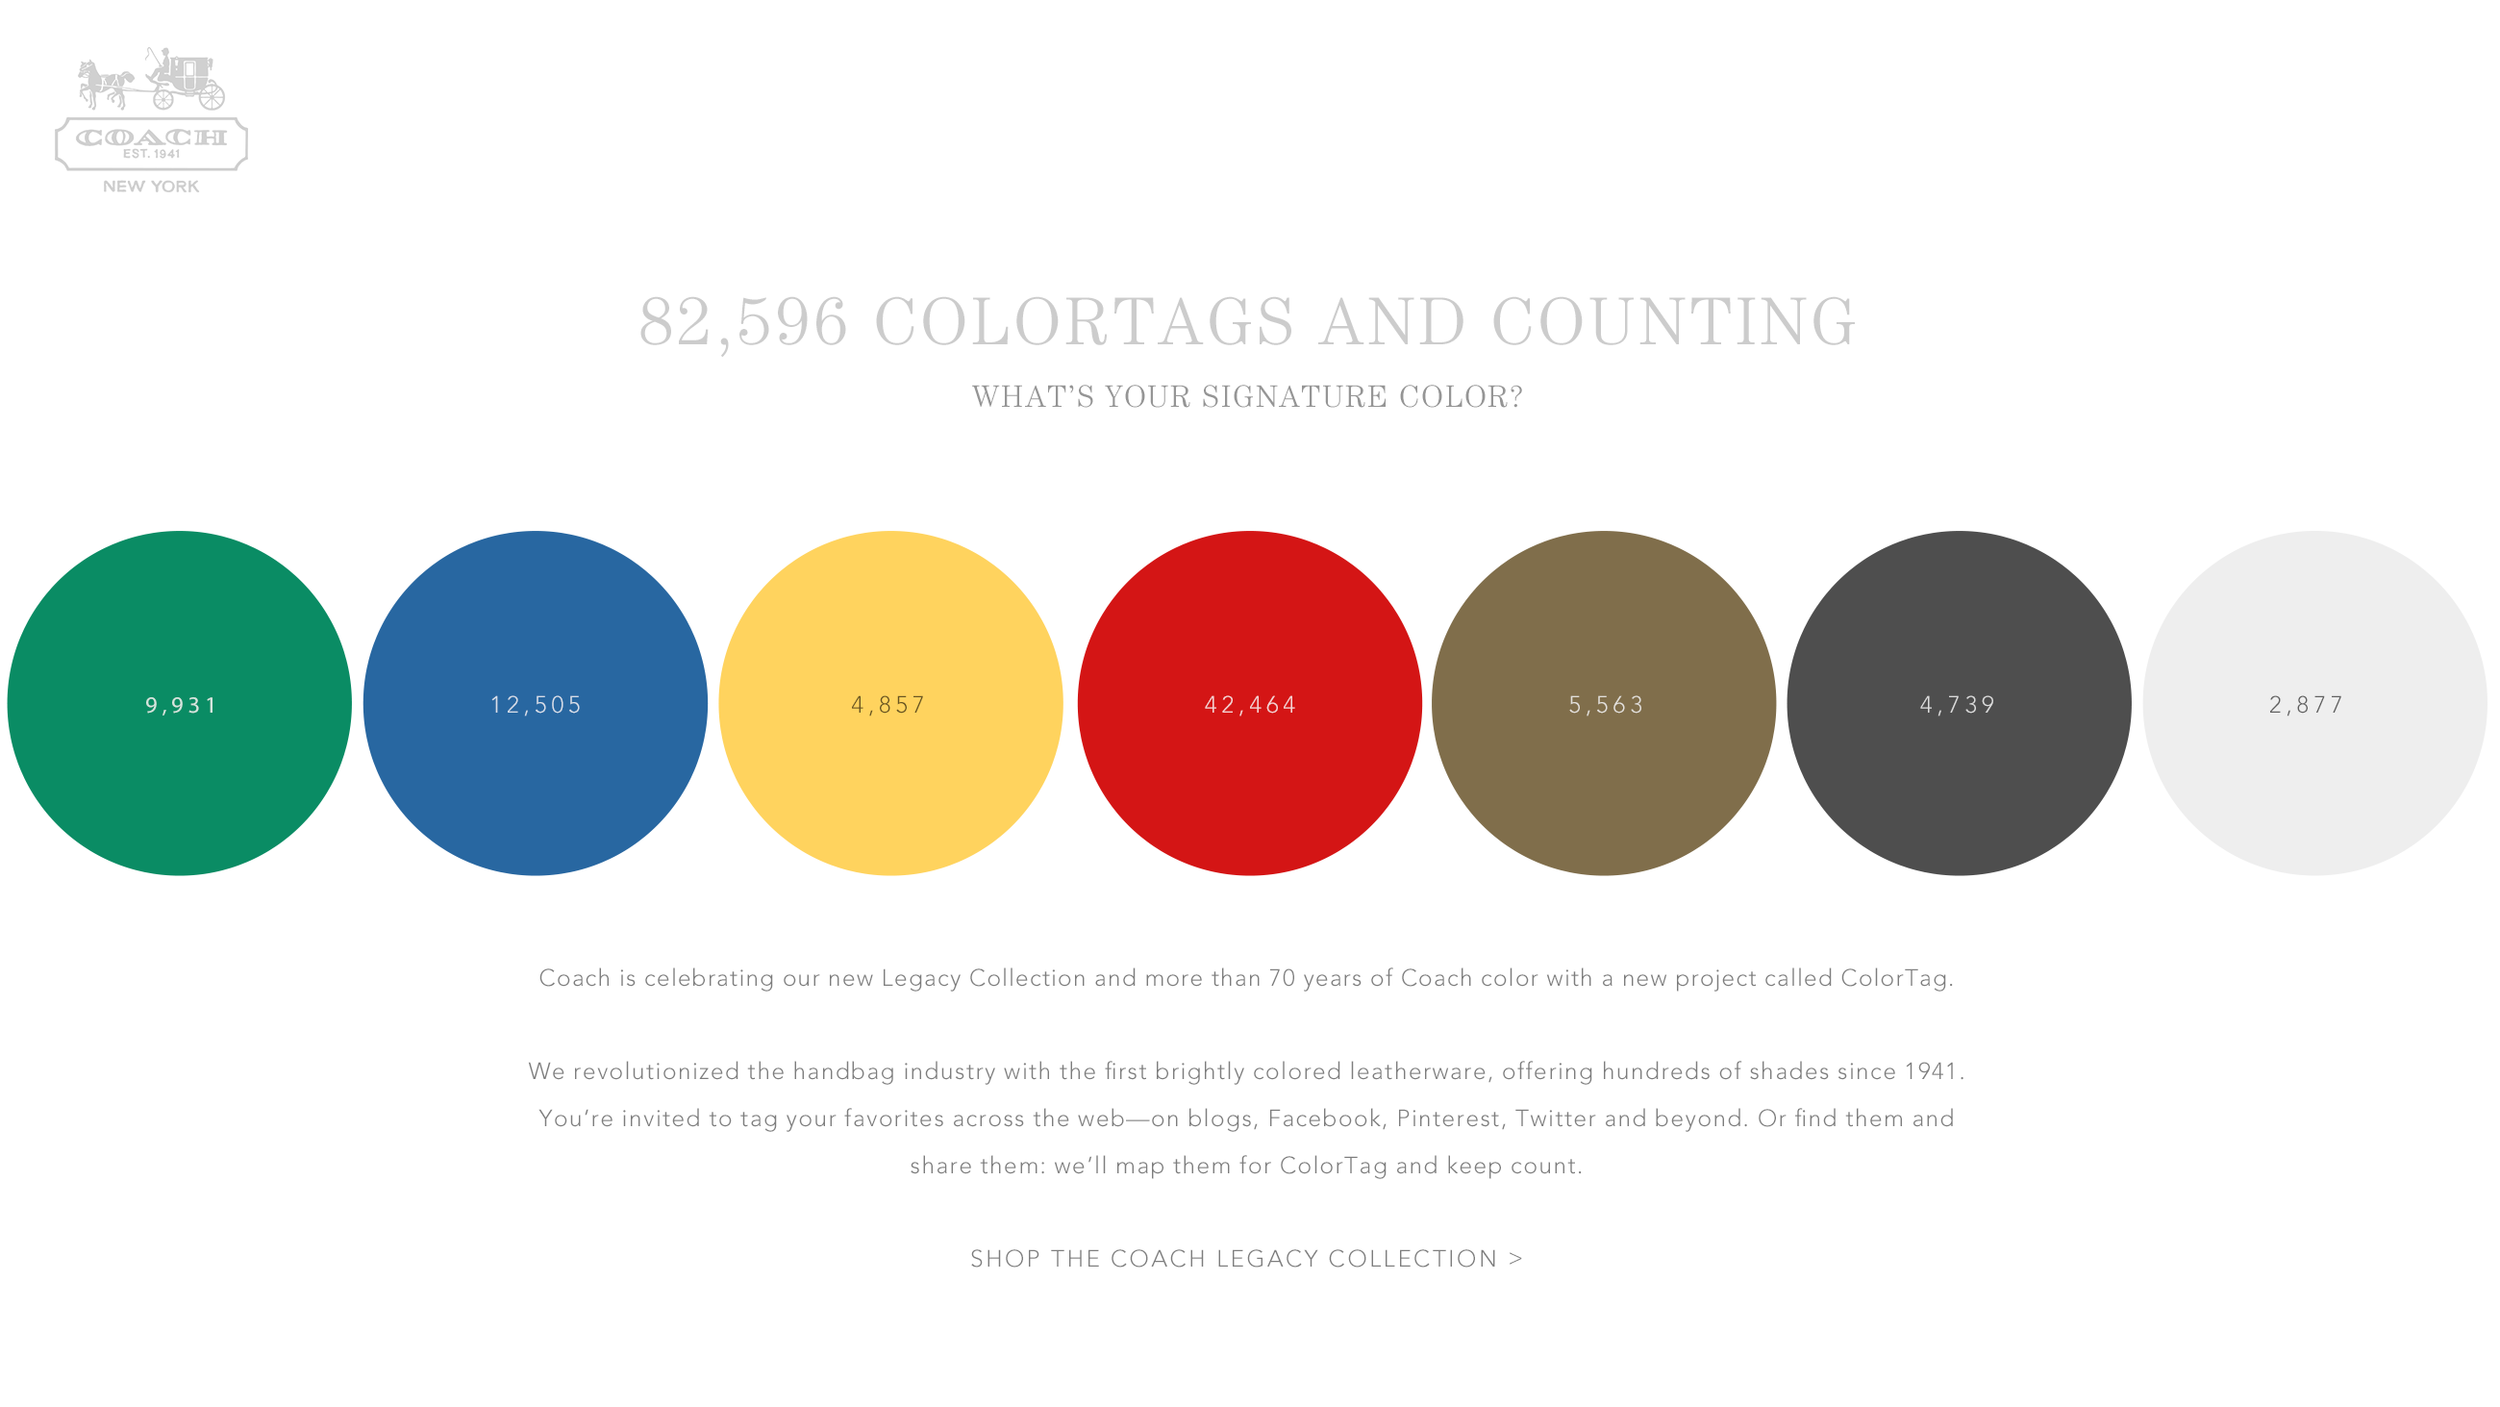 colortag-info@2x.png